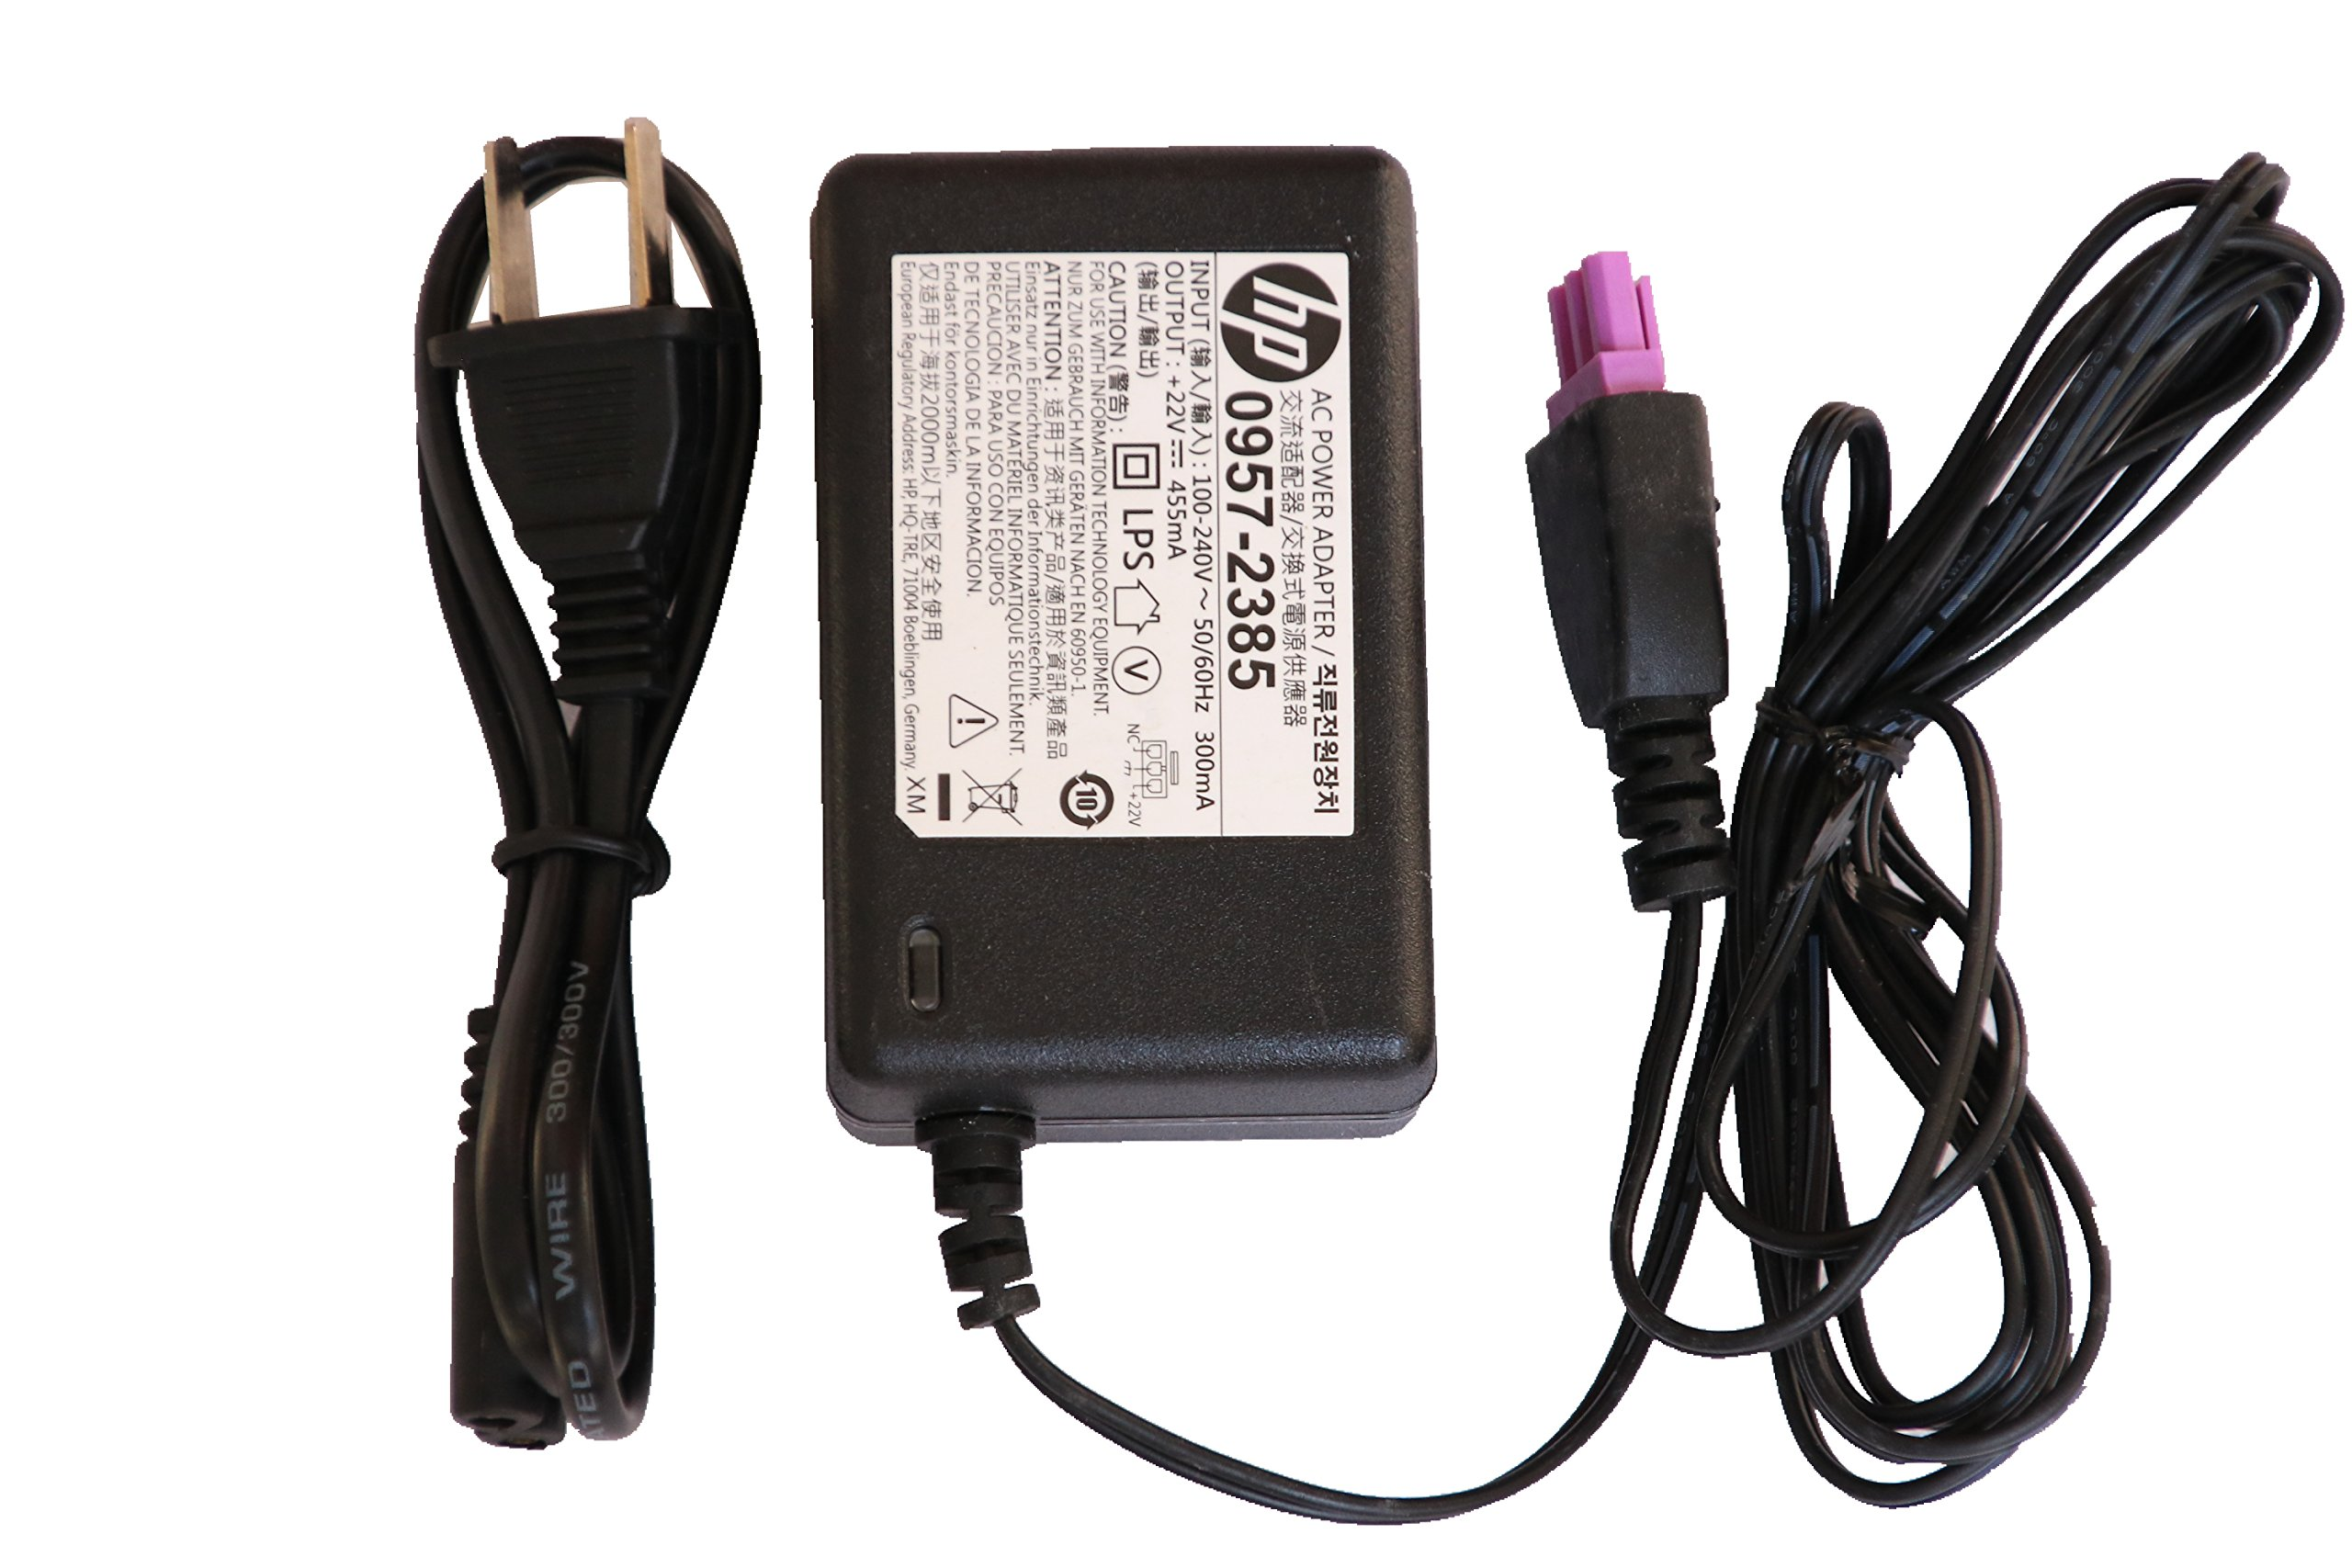 Cheap Hp Deskjet 920c Find Deals On Line At Alibabacom Psc0 Laptop Toshiba Wiring Diagram Get Quotations Ac Dc Adapter 0957 2403 2385 For 1010 1012 1510